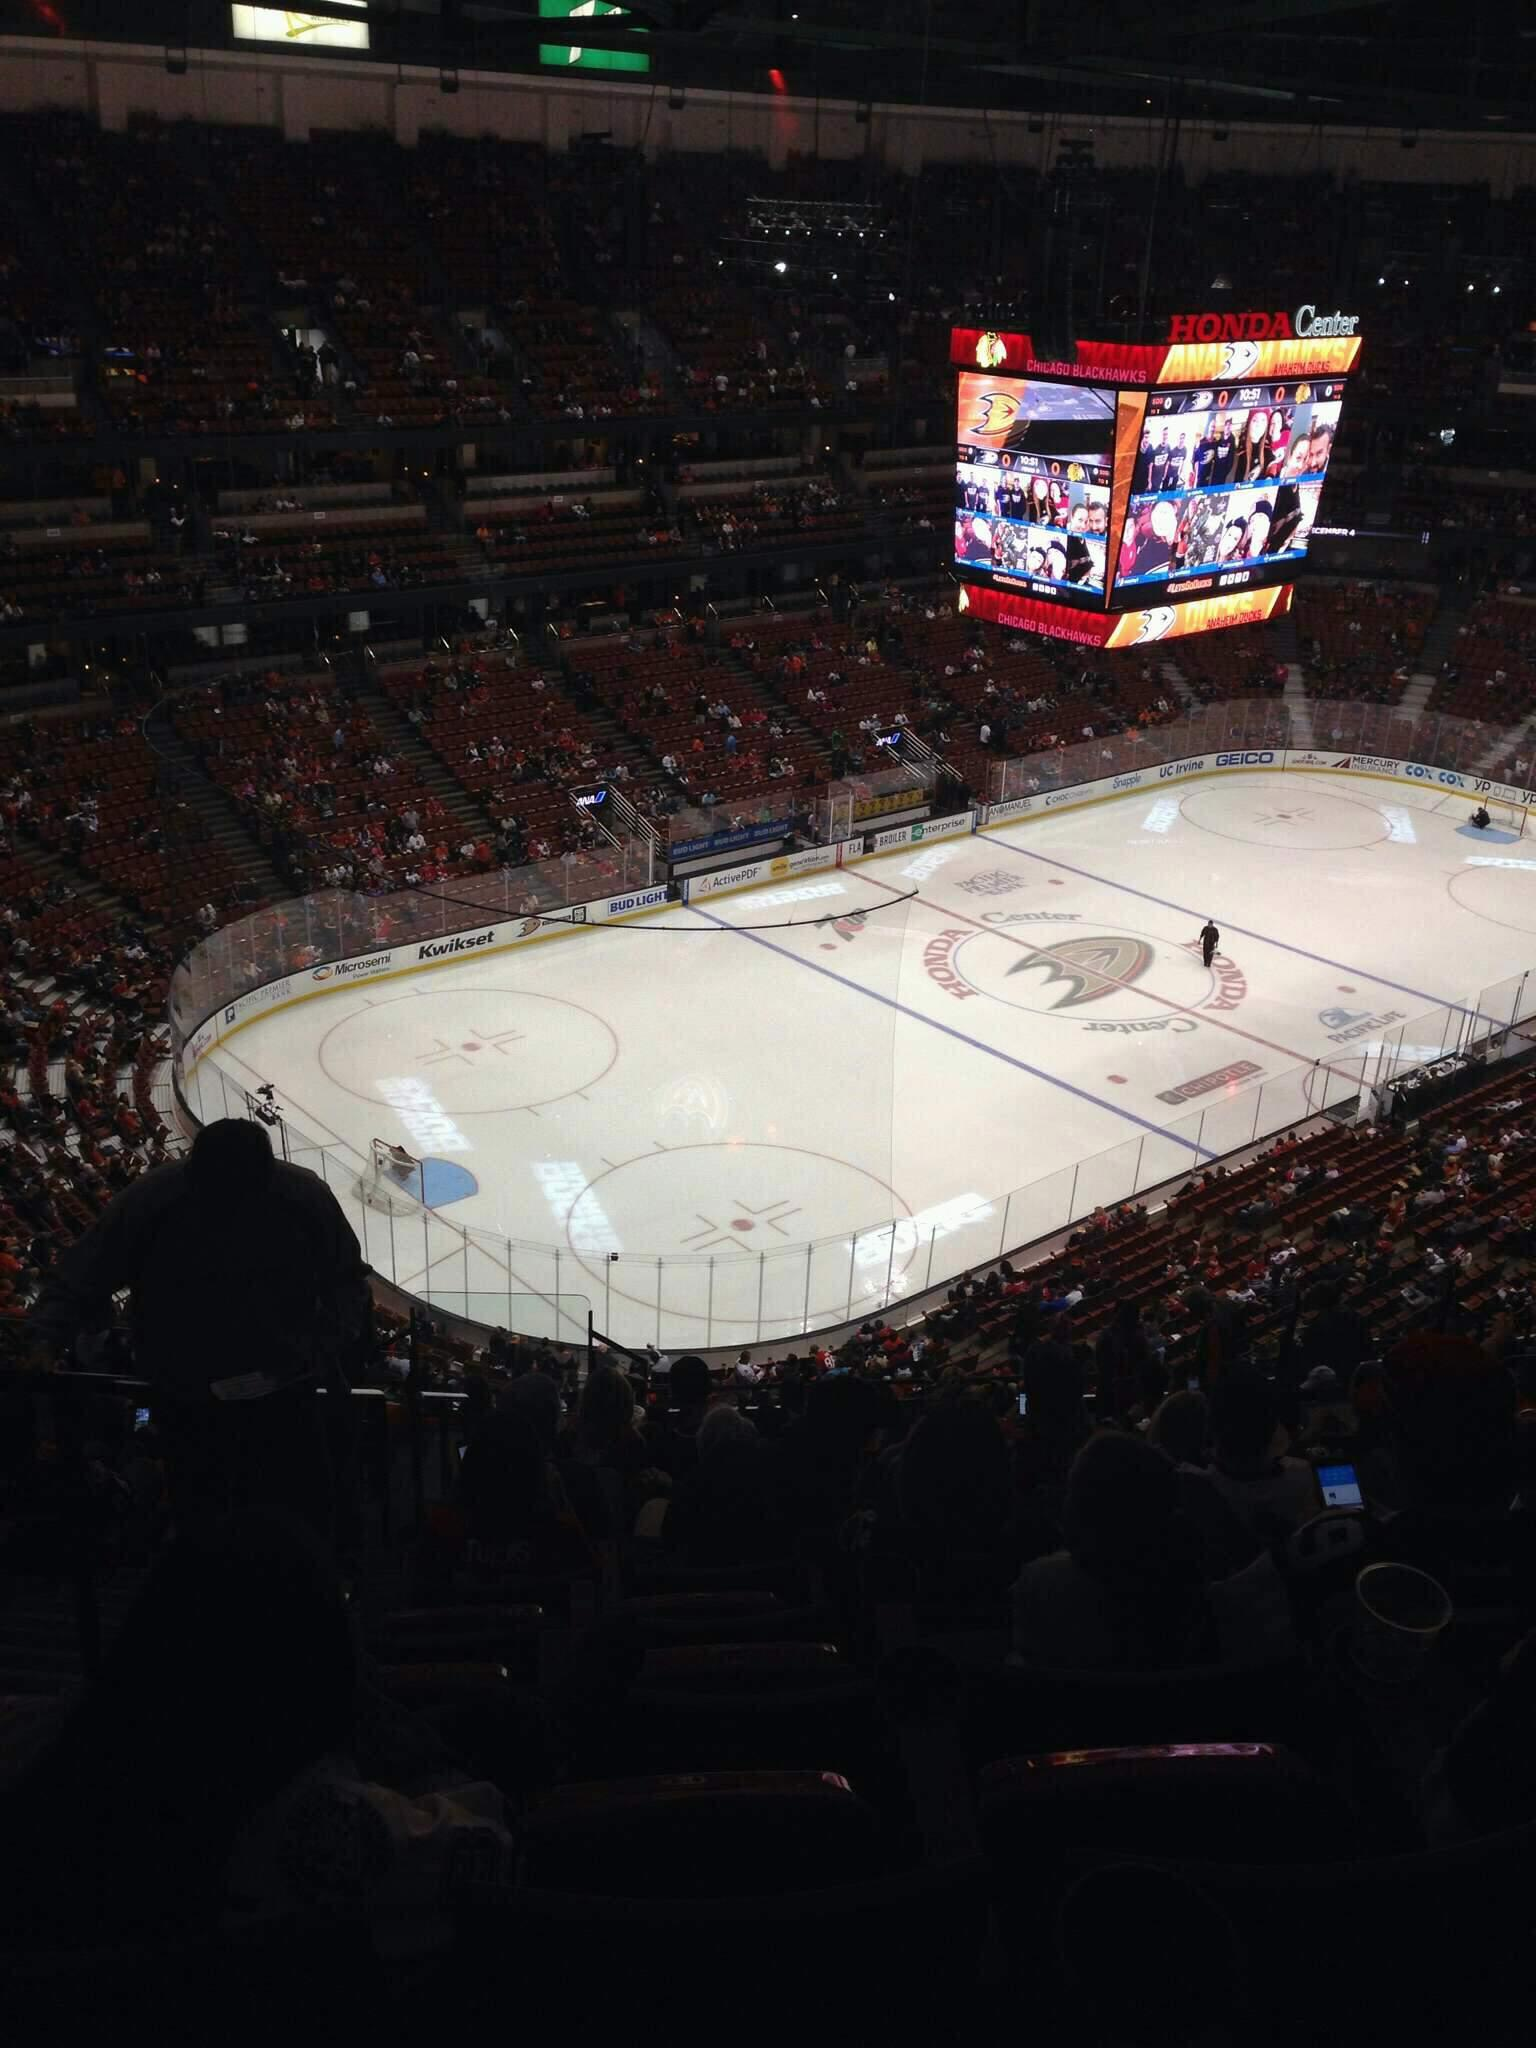 Honda Center Section 439 Row s Seat 14